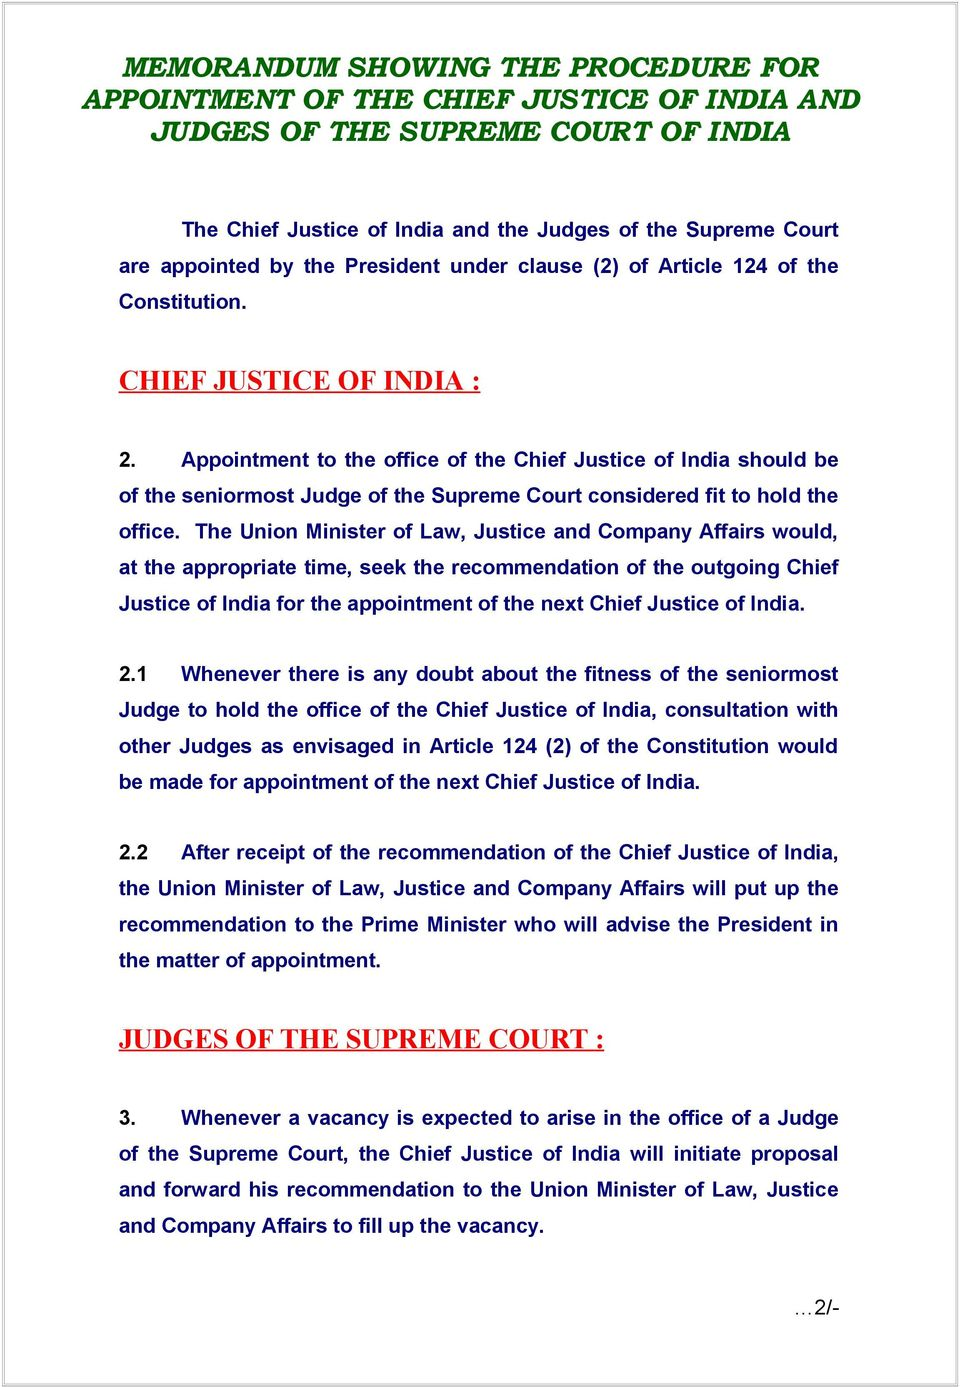 Appointment to the office of the Chief Justice of India should be of the seniormost Judge of the Supreme Court considered fit to hold the office.